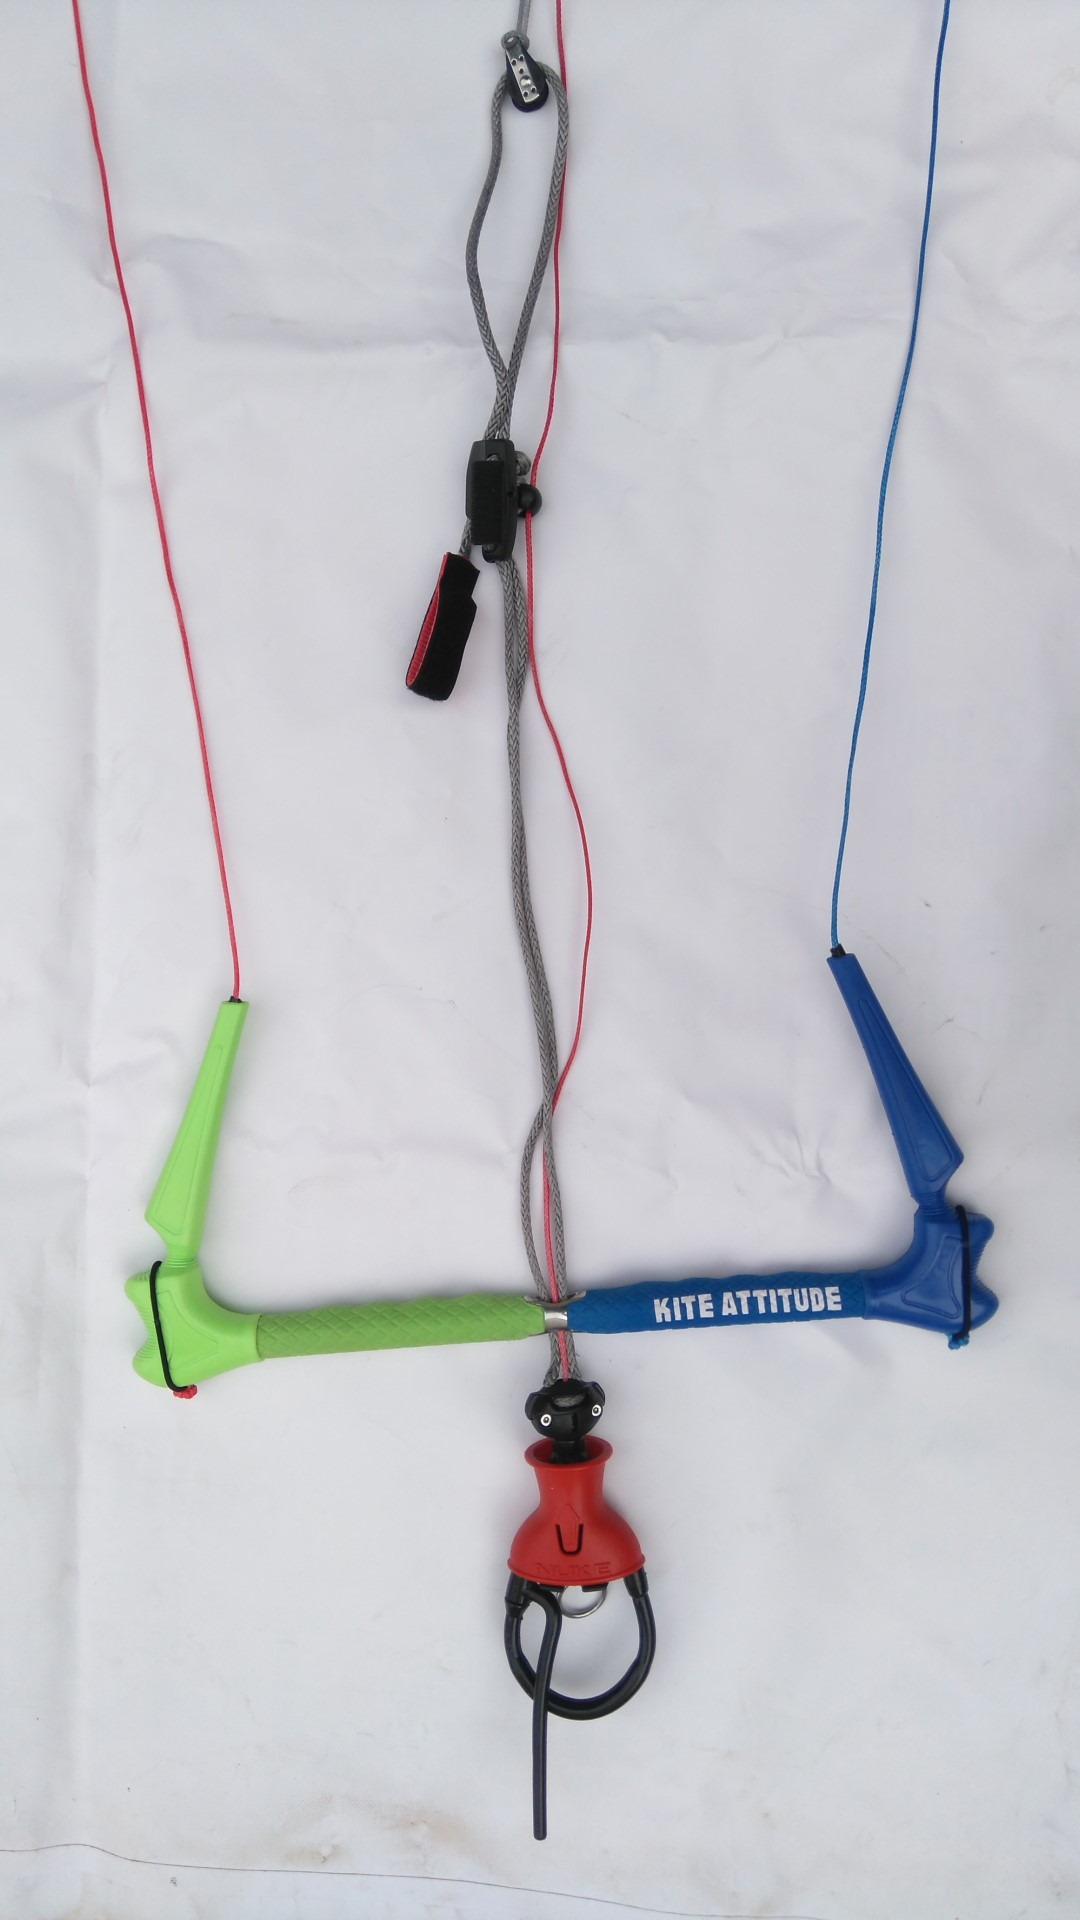 DUOTONE TRUST BAR QUAD CONTROL 22 METER KITE BAR Bars QUICK RELEASE ROPE HARNESS Weiterer Wassersport